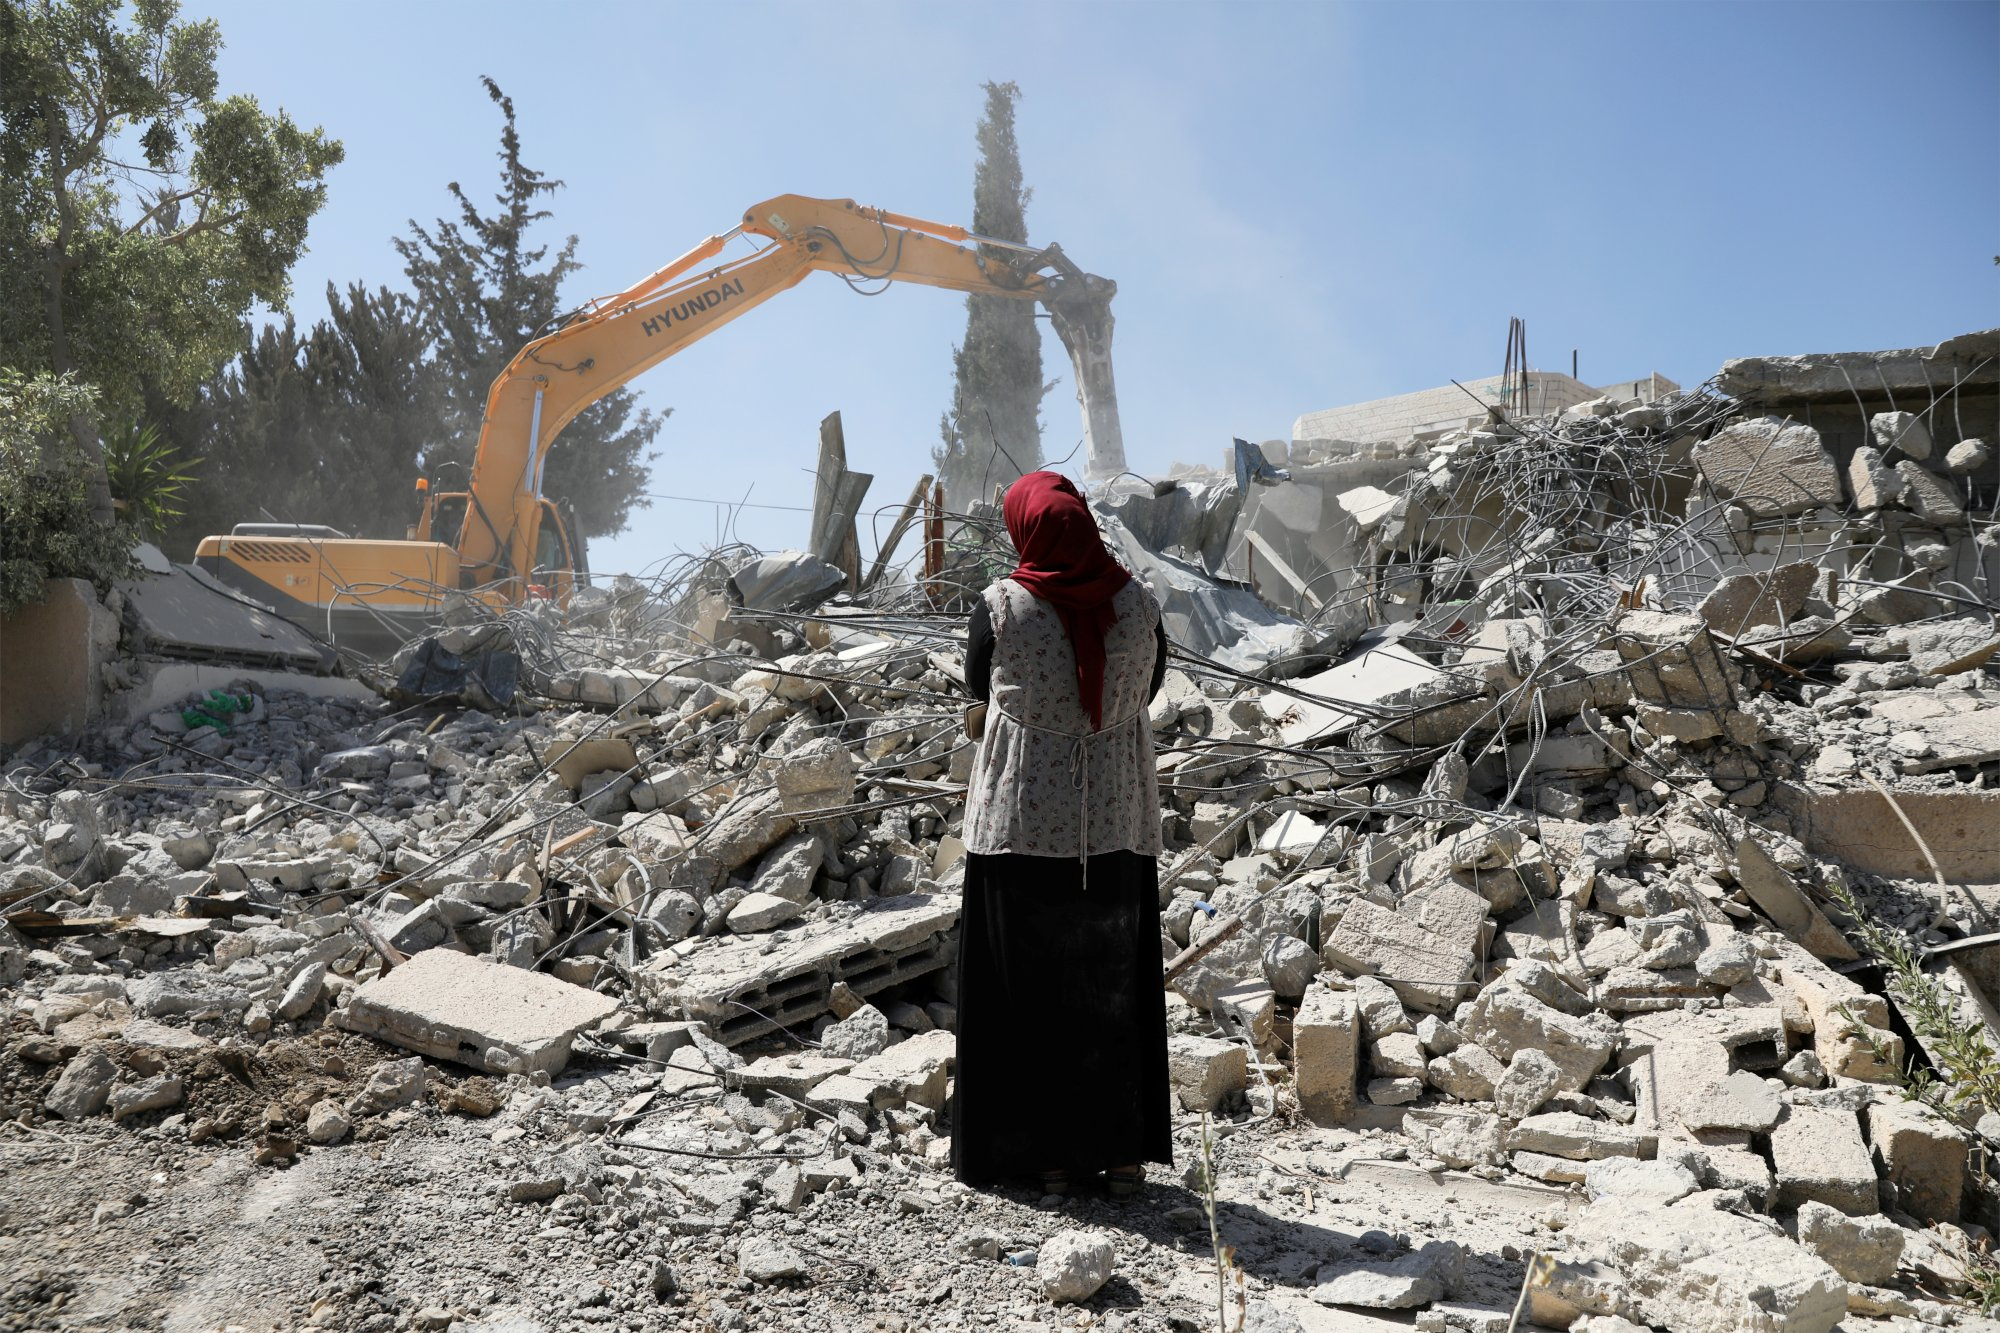 Fawzia stands on the ruins of her house, after her Palestinian ex-husband demolished the dwelling to not face the prospect of Israeli settlers moving in after he lost a land ownership case in Israeli courts, in the East Jerusalem neighbourhood of Beit Hanina, July 19, 2018. REUTERS/Ammar Awad